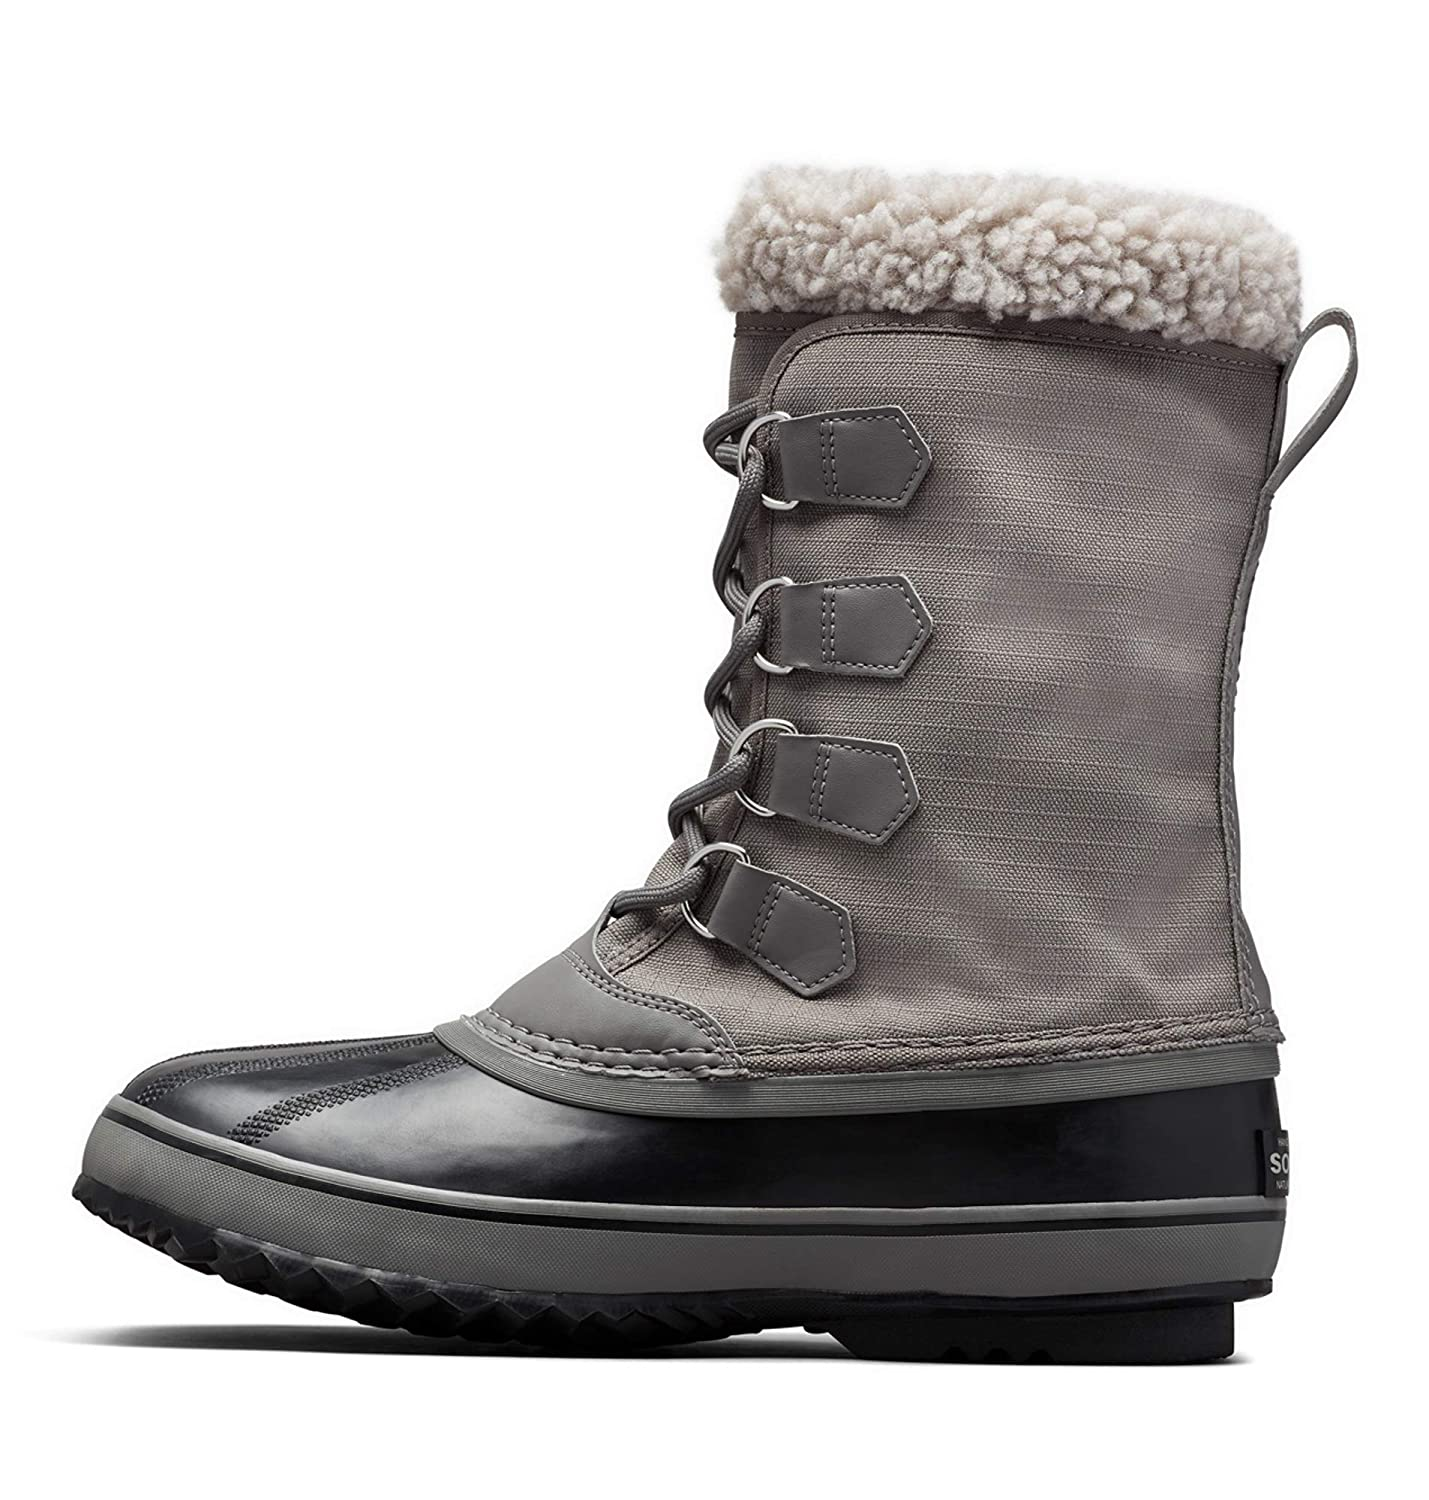 f2de6fe98a1 SOREL Men's 1964 Pac Nylon Snow Boot